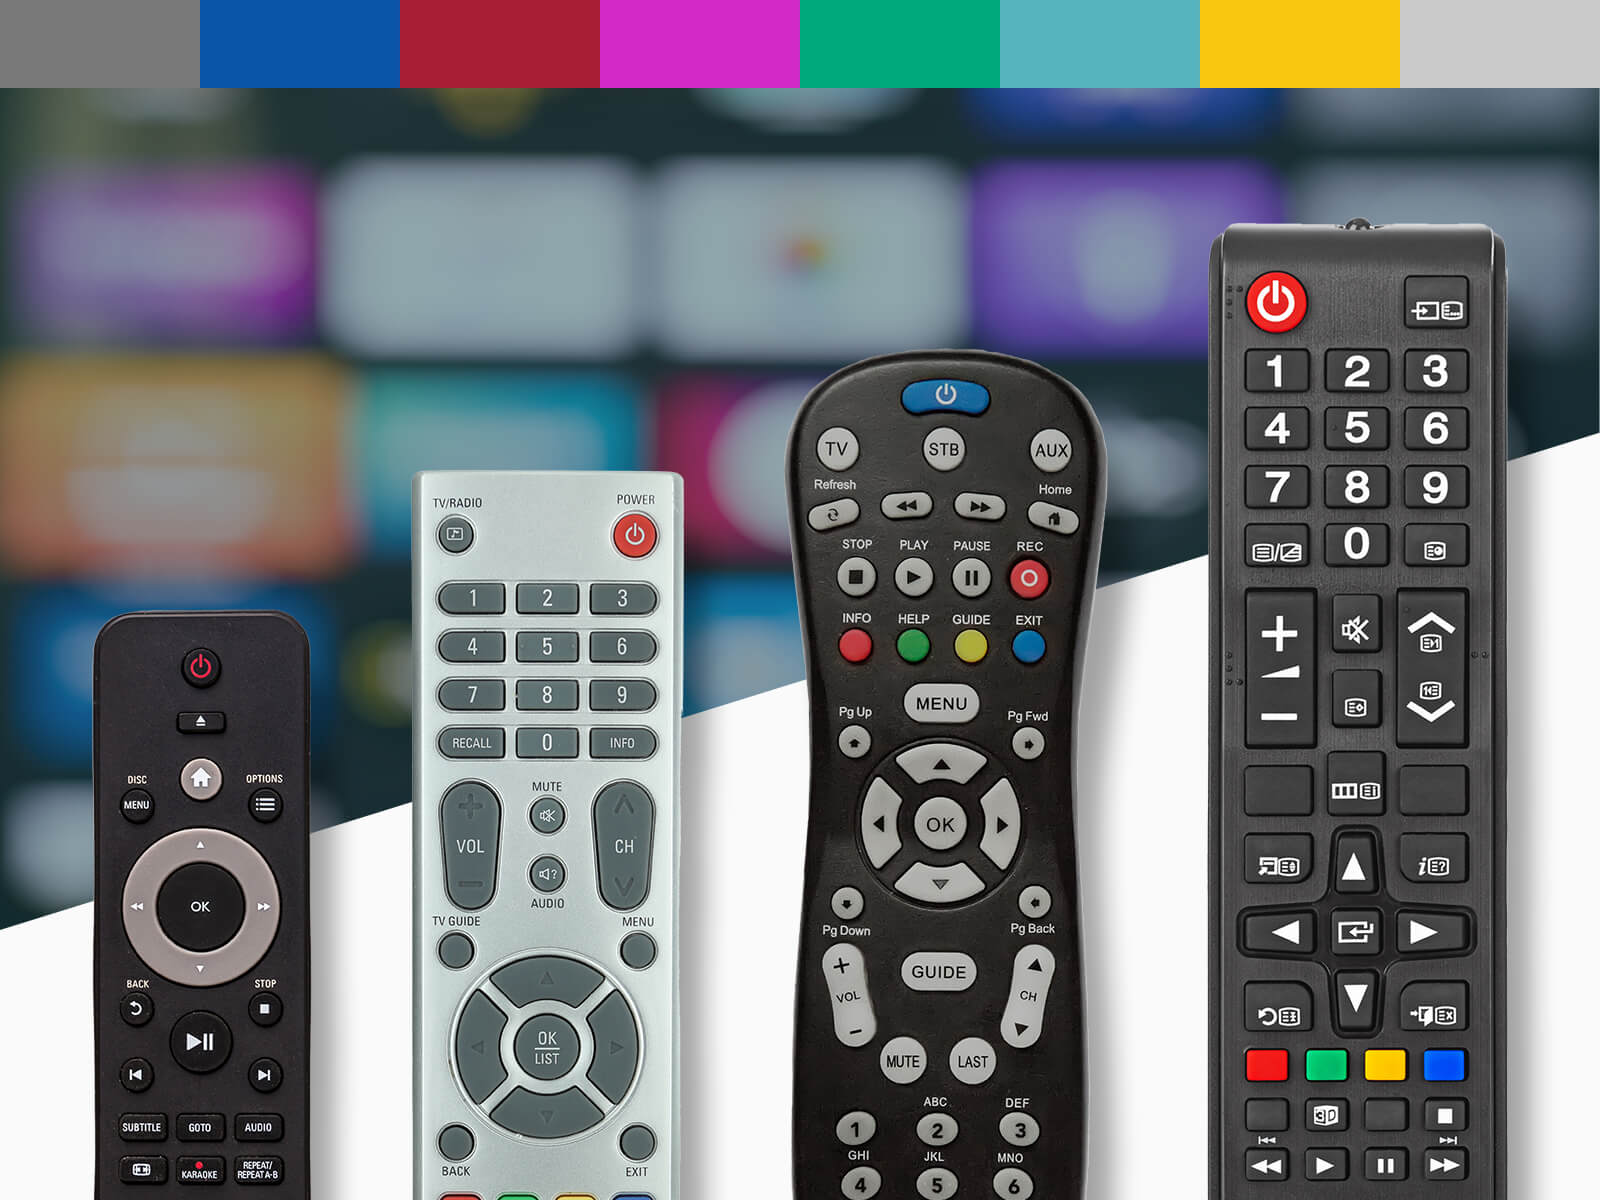 Delivering high-performing marketing across connected TV